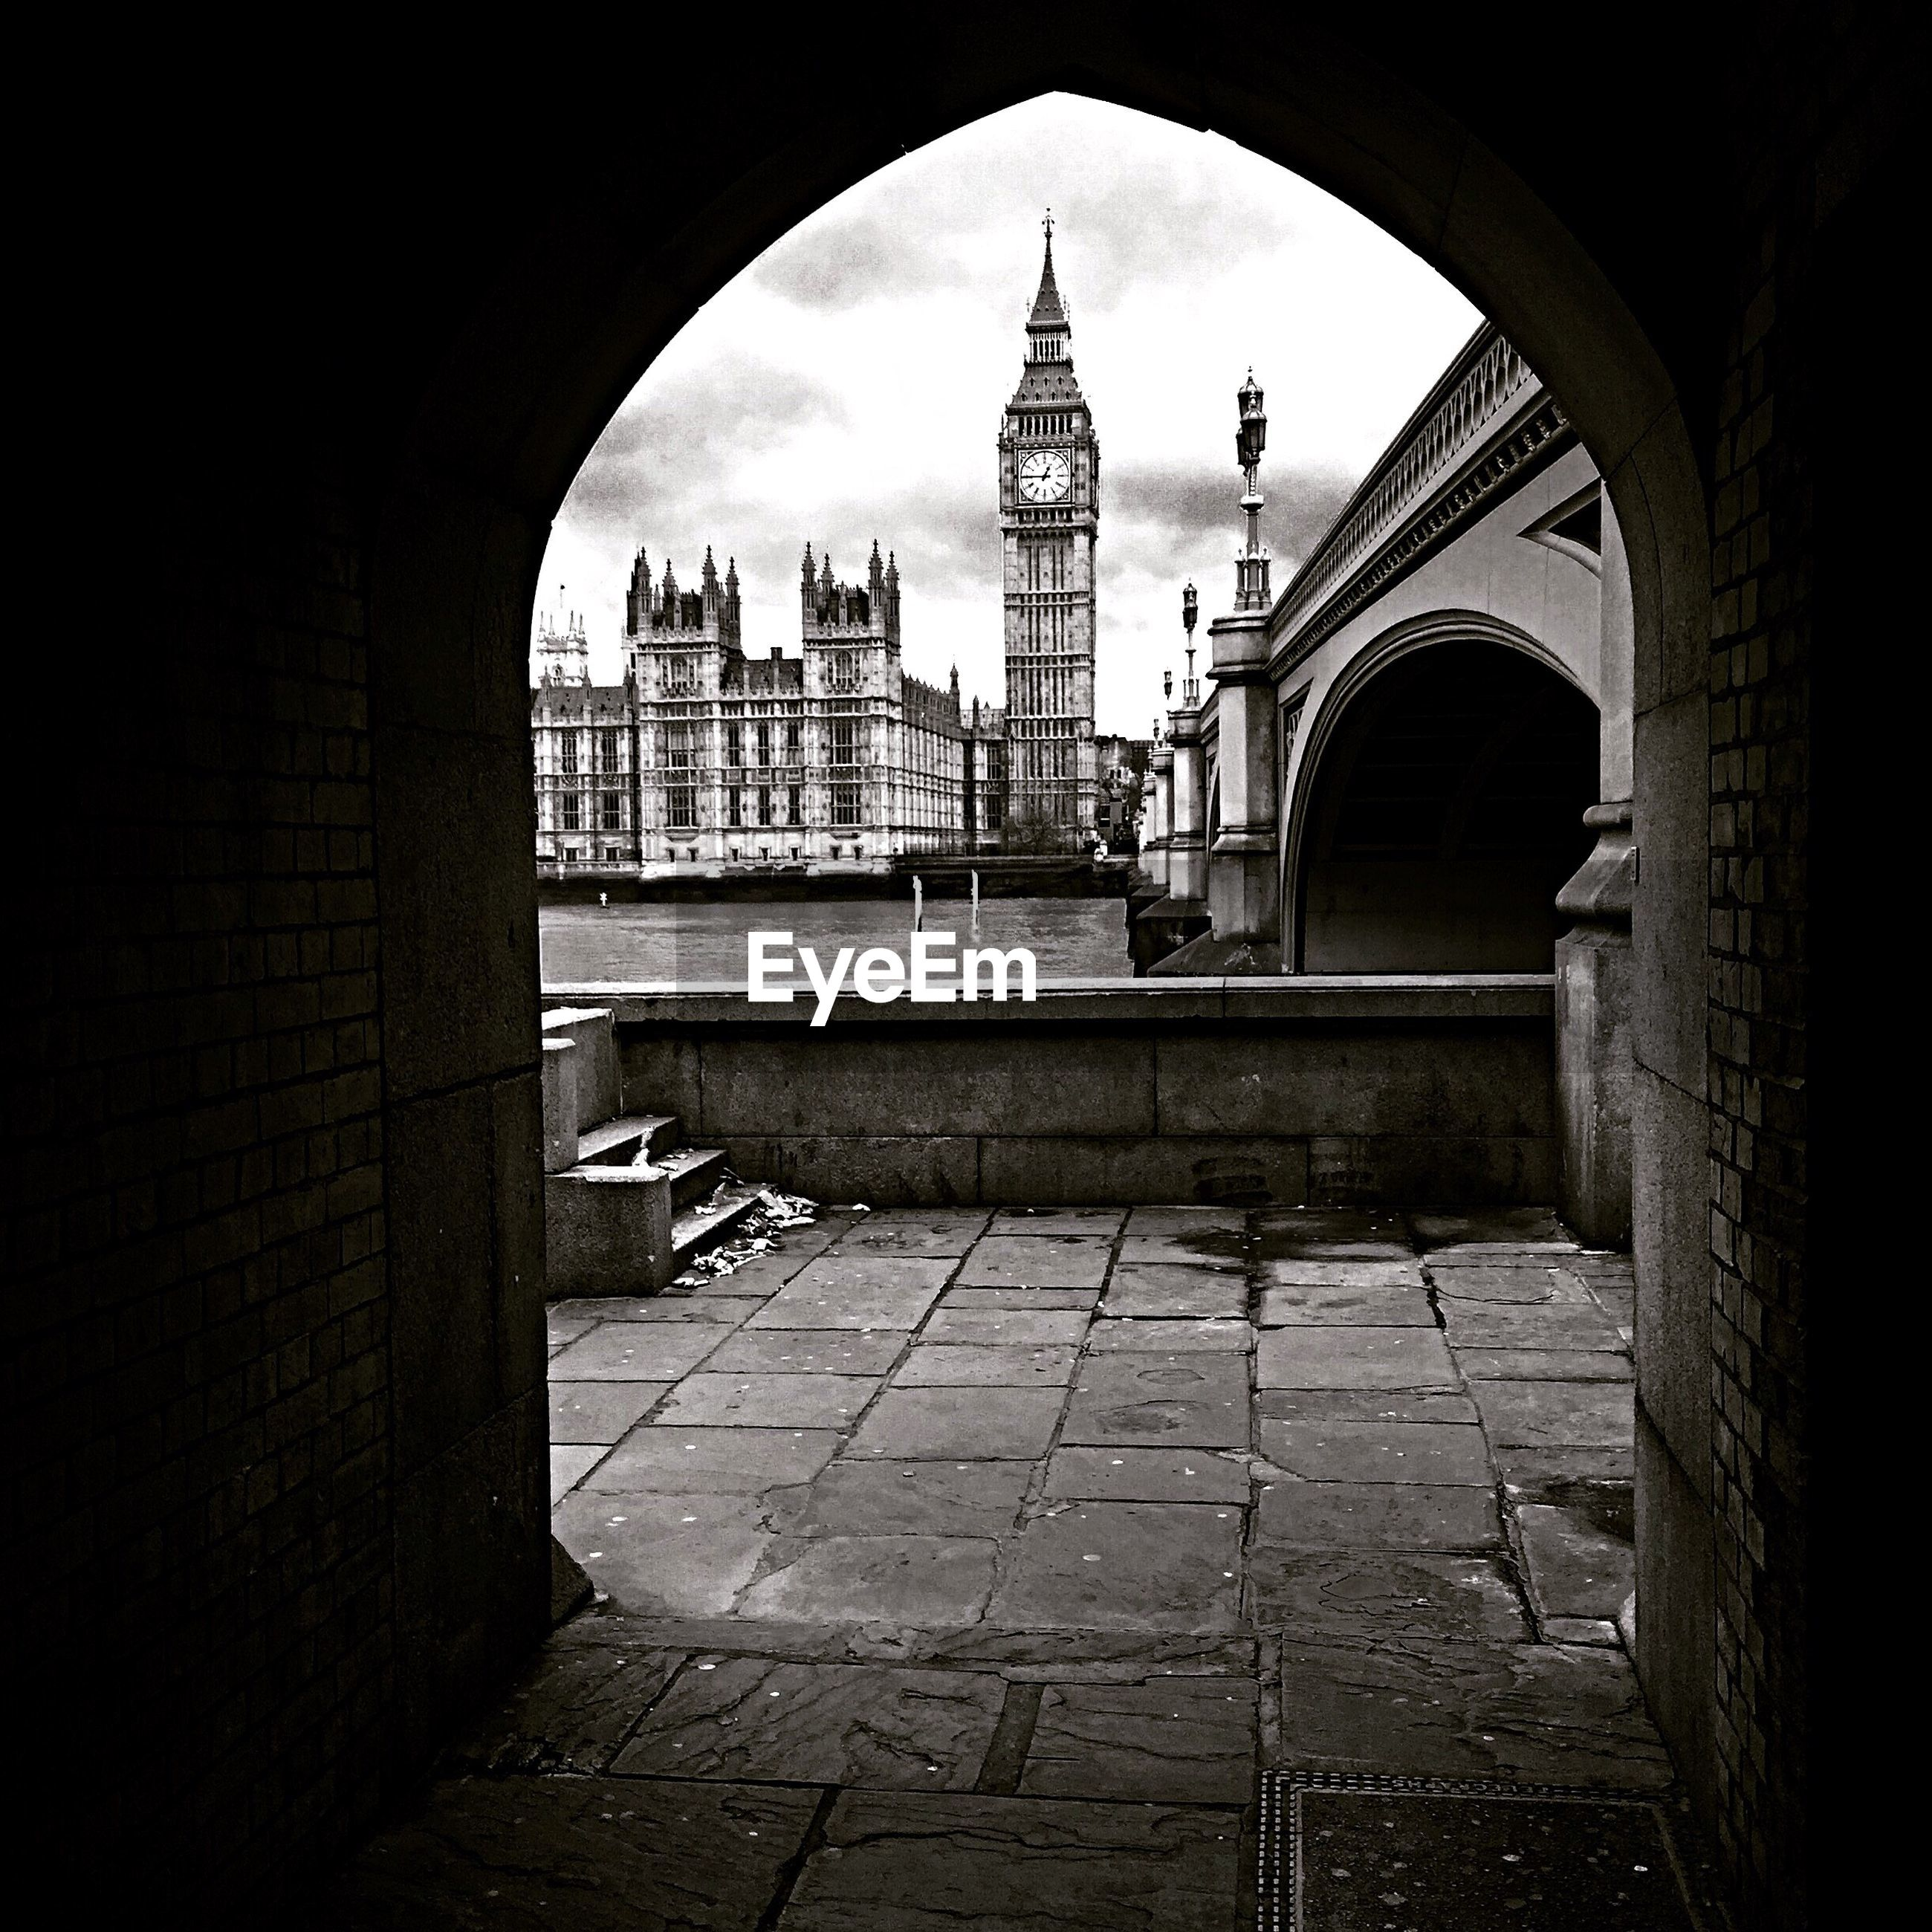 Big ben and the houses of parliament seen through walkway